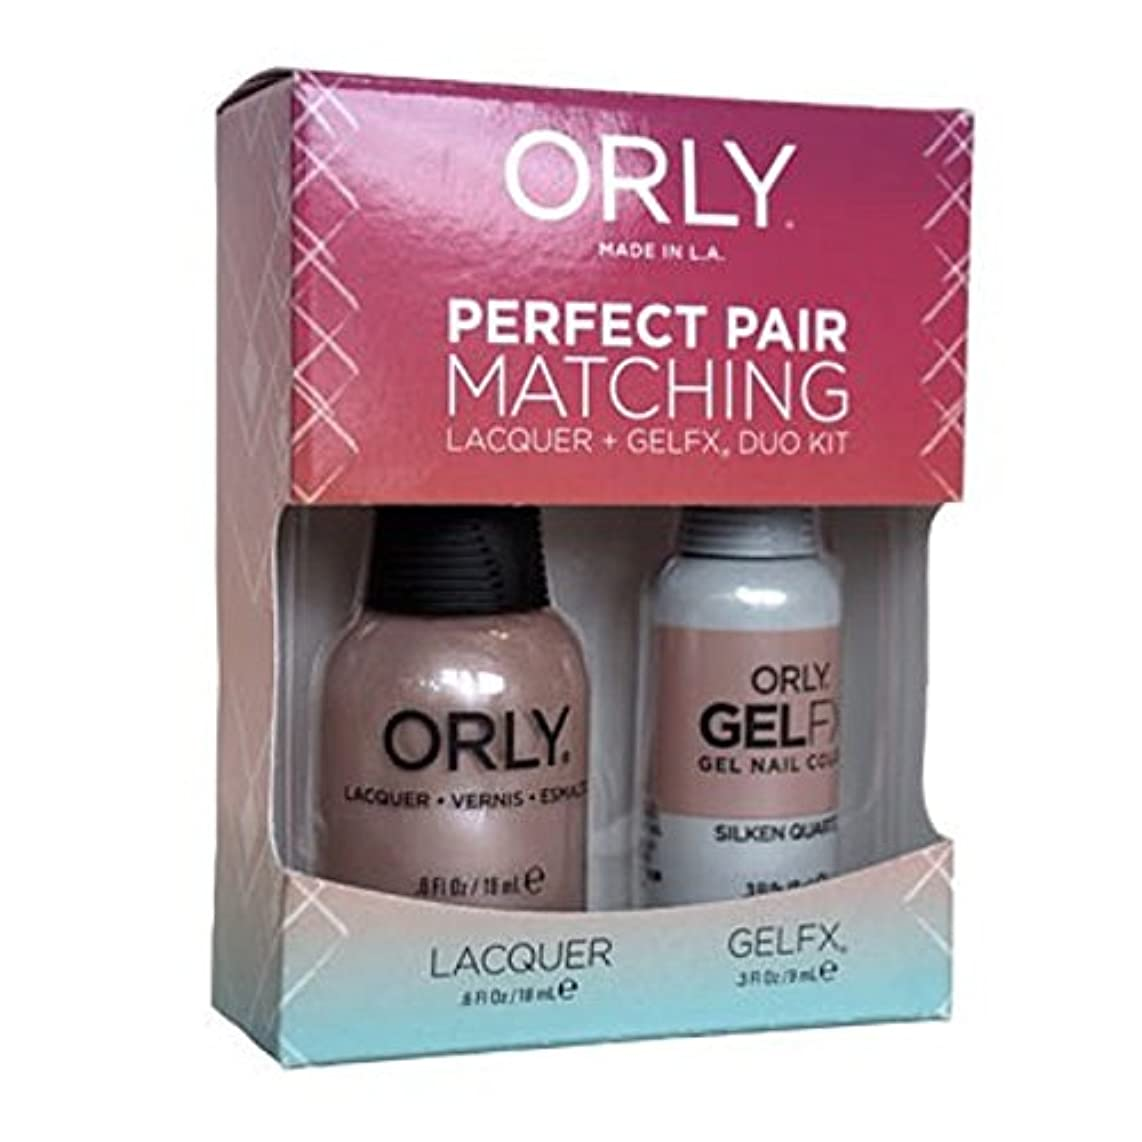 歯痛自治的アウターOrly - Perfect Pair Matching Lacquer+Gel FX Kit - Silken Quartz - 0.6 oz / 0.3 oz